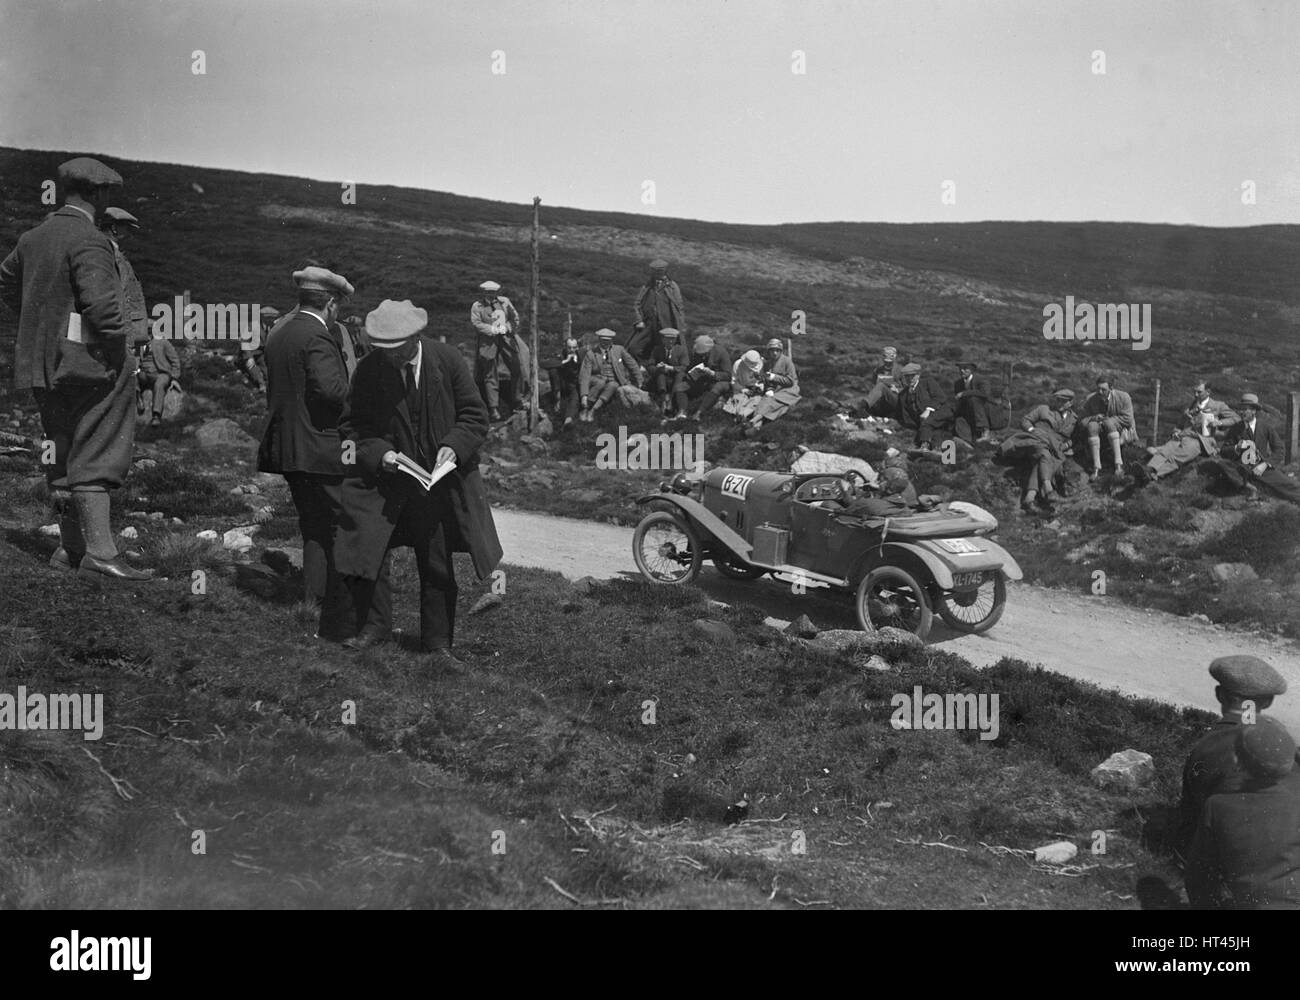 Amilcar open 2-seater of AE Bull competing in the Scottish Light Car Trial, 1922. Artist: Bill Brunell. - Stock Image